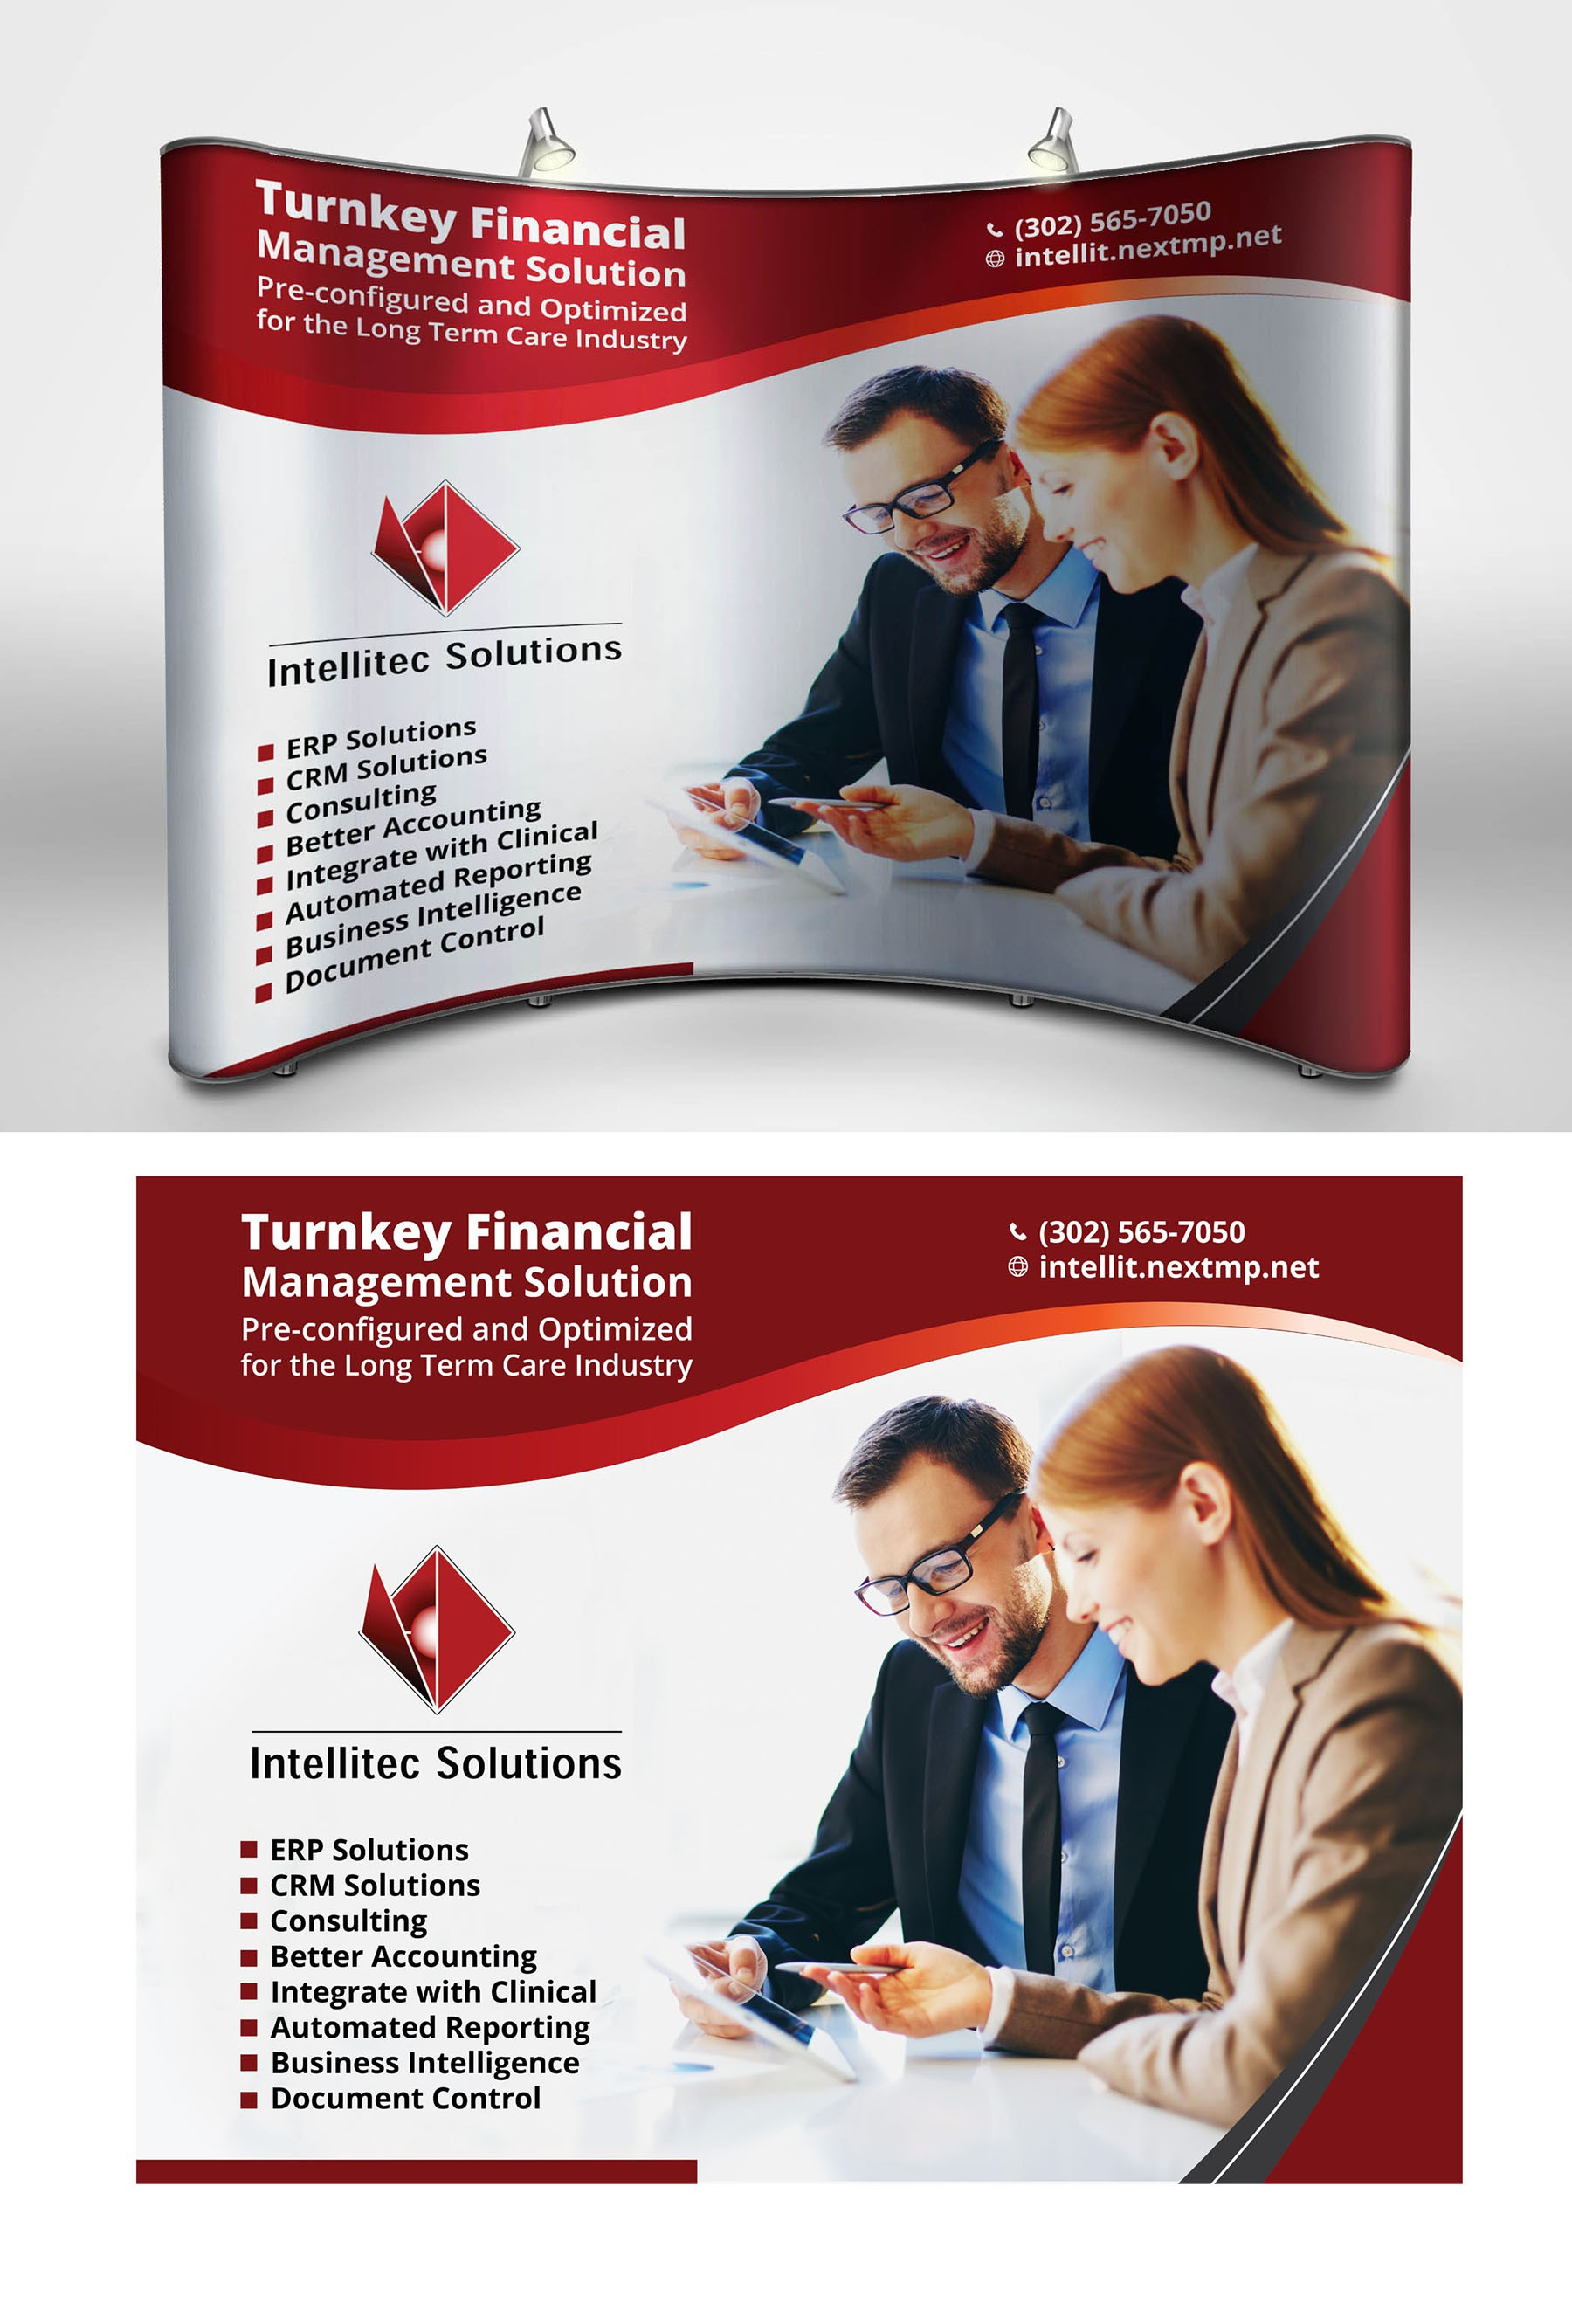 Create a Tradeshow Booth Backdrop for Accounting Software company